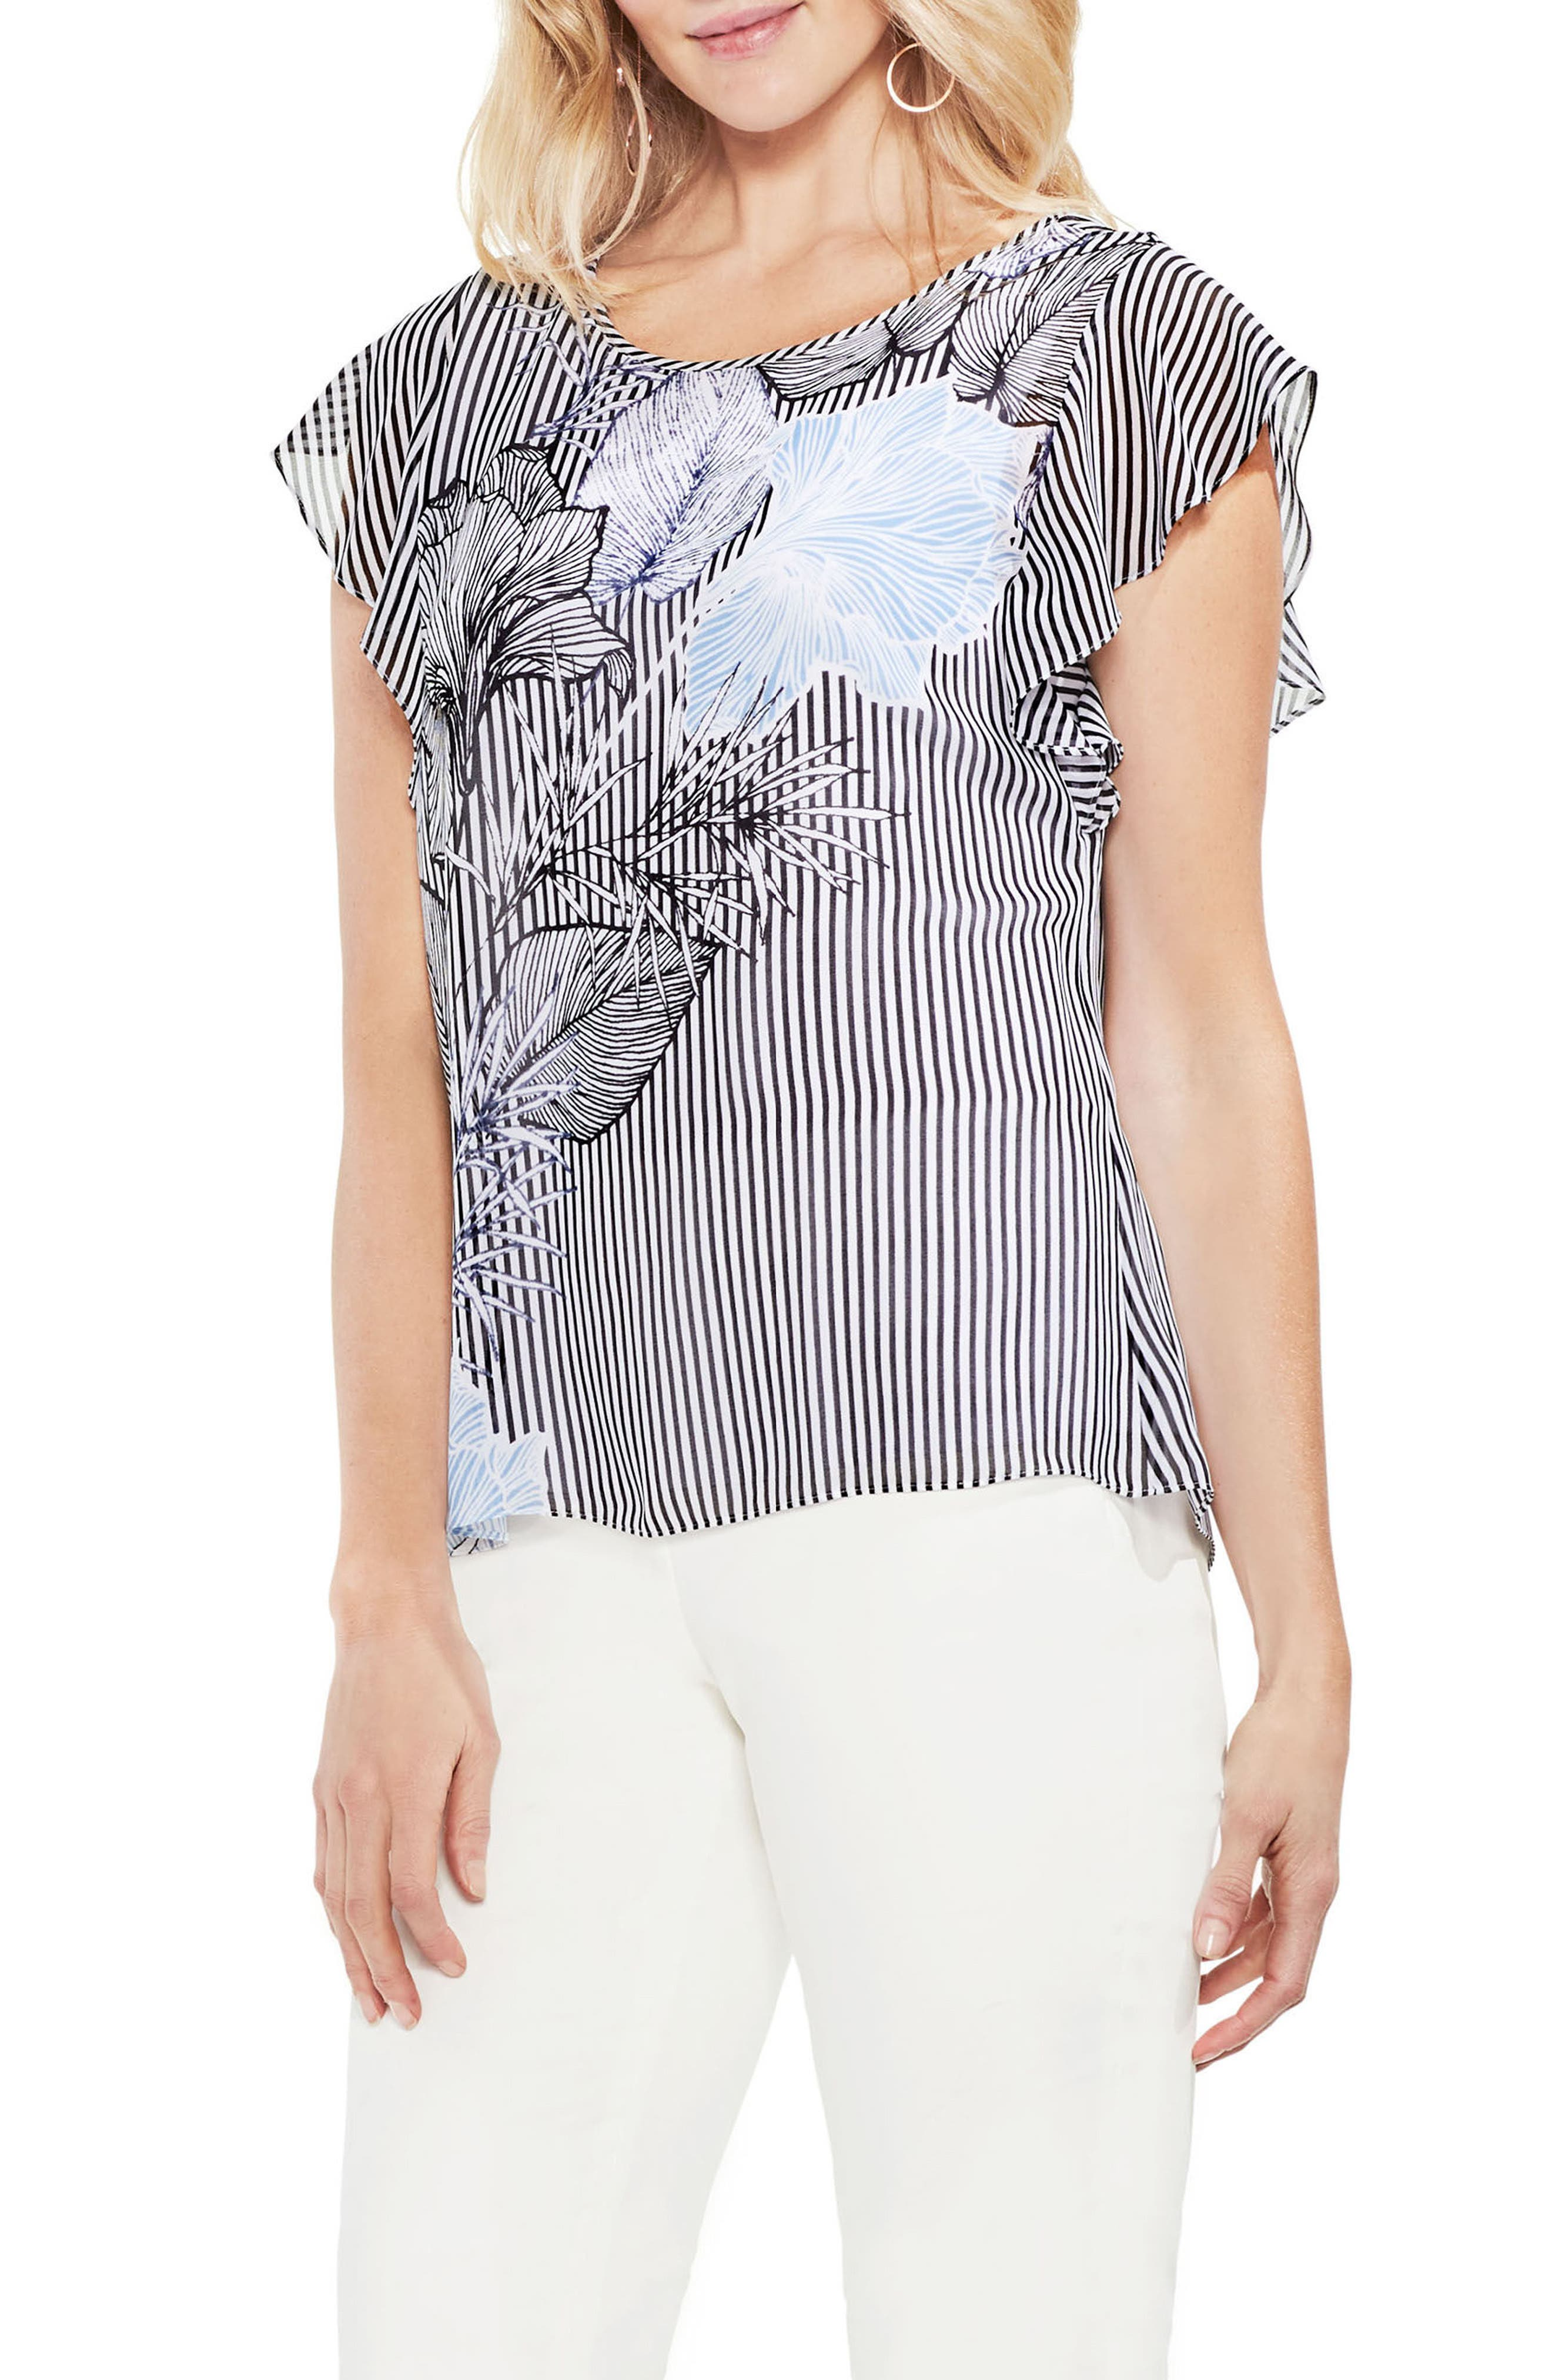 Flutter Sleeved Etched Floral Stripe Top,                             Main thumbnail 1, color,                             001